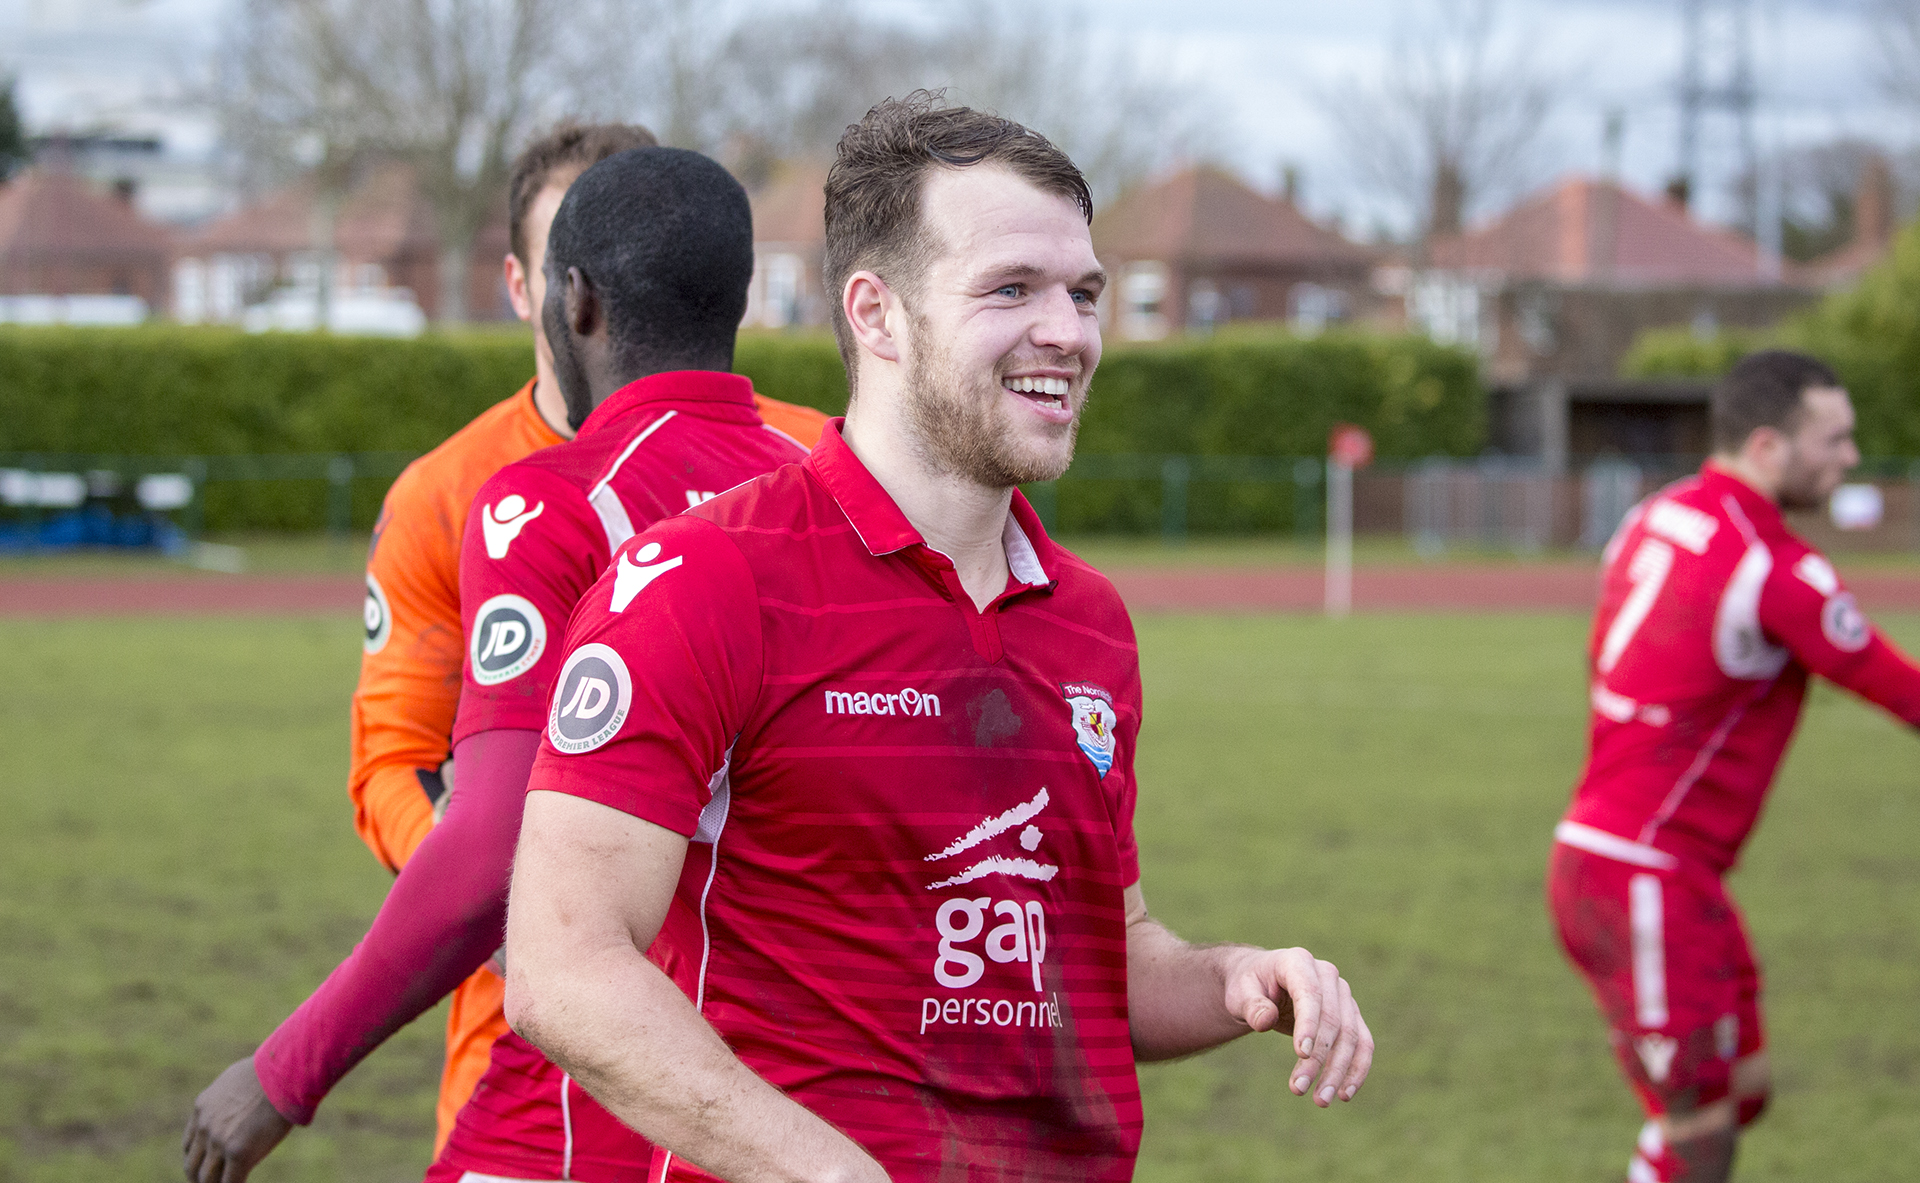 Callum Morris pictured after The Nomads' 2-1 victory over Cefn Druids - © NCM Media